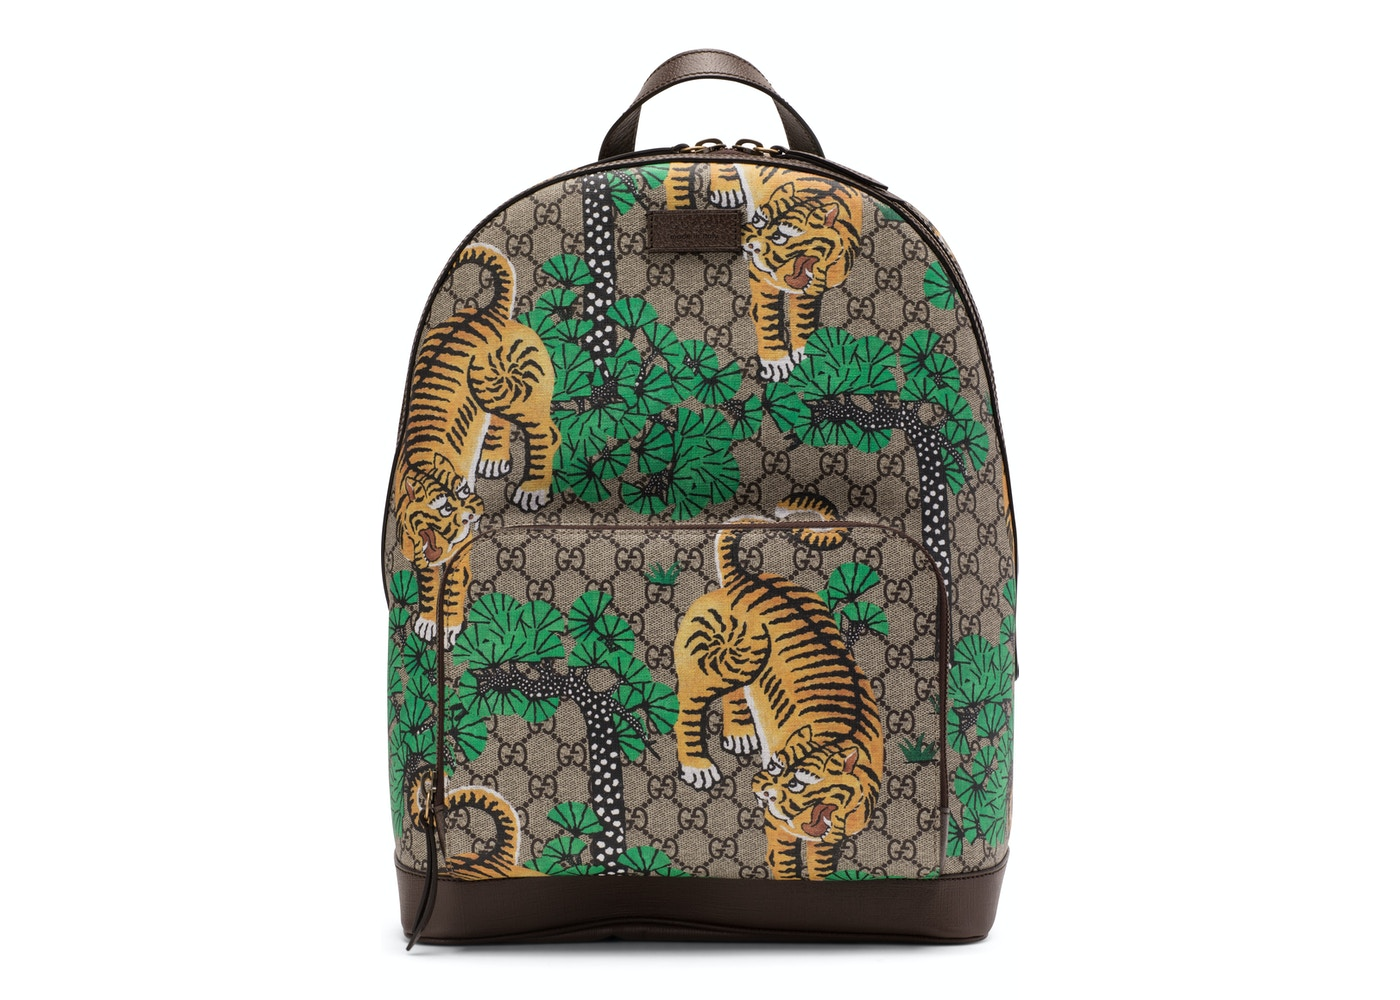 fafc6ef2958e Gucci Tiger Print Backpack GG Supreme Monogram Brown Green Yellow